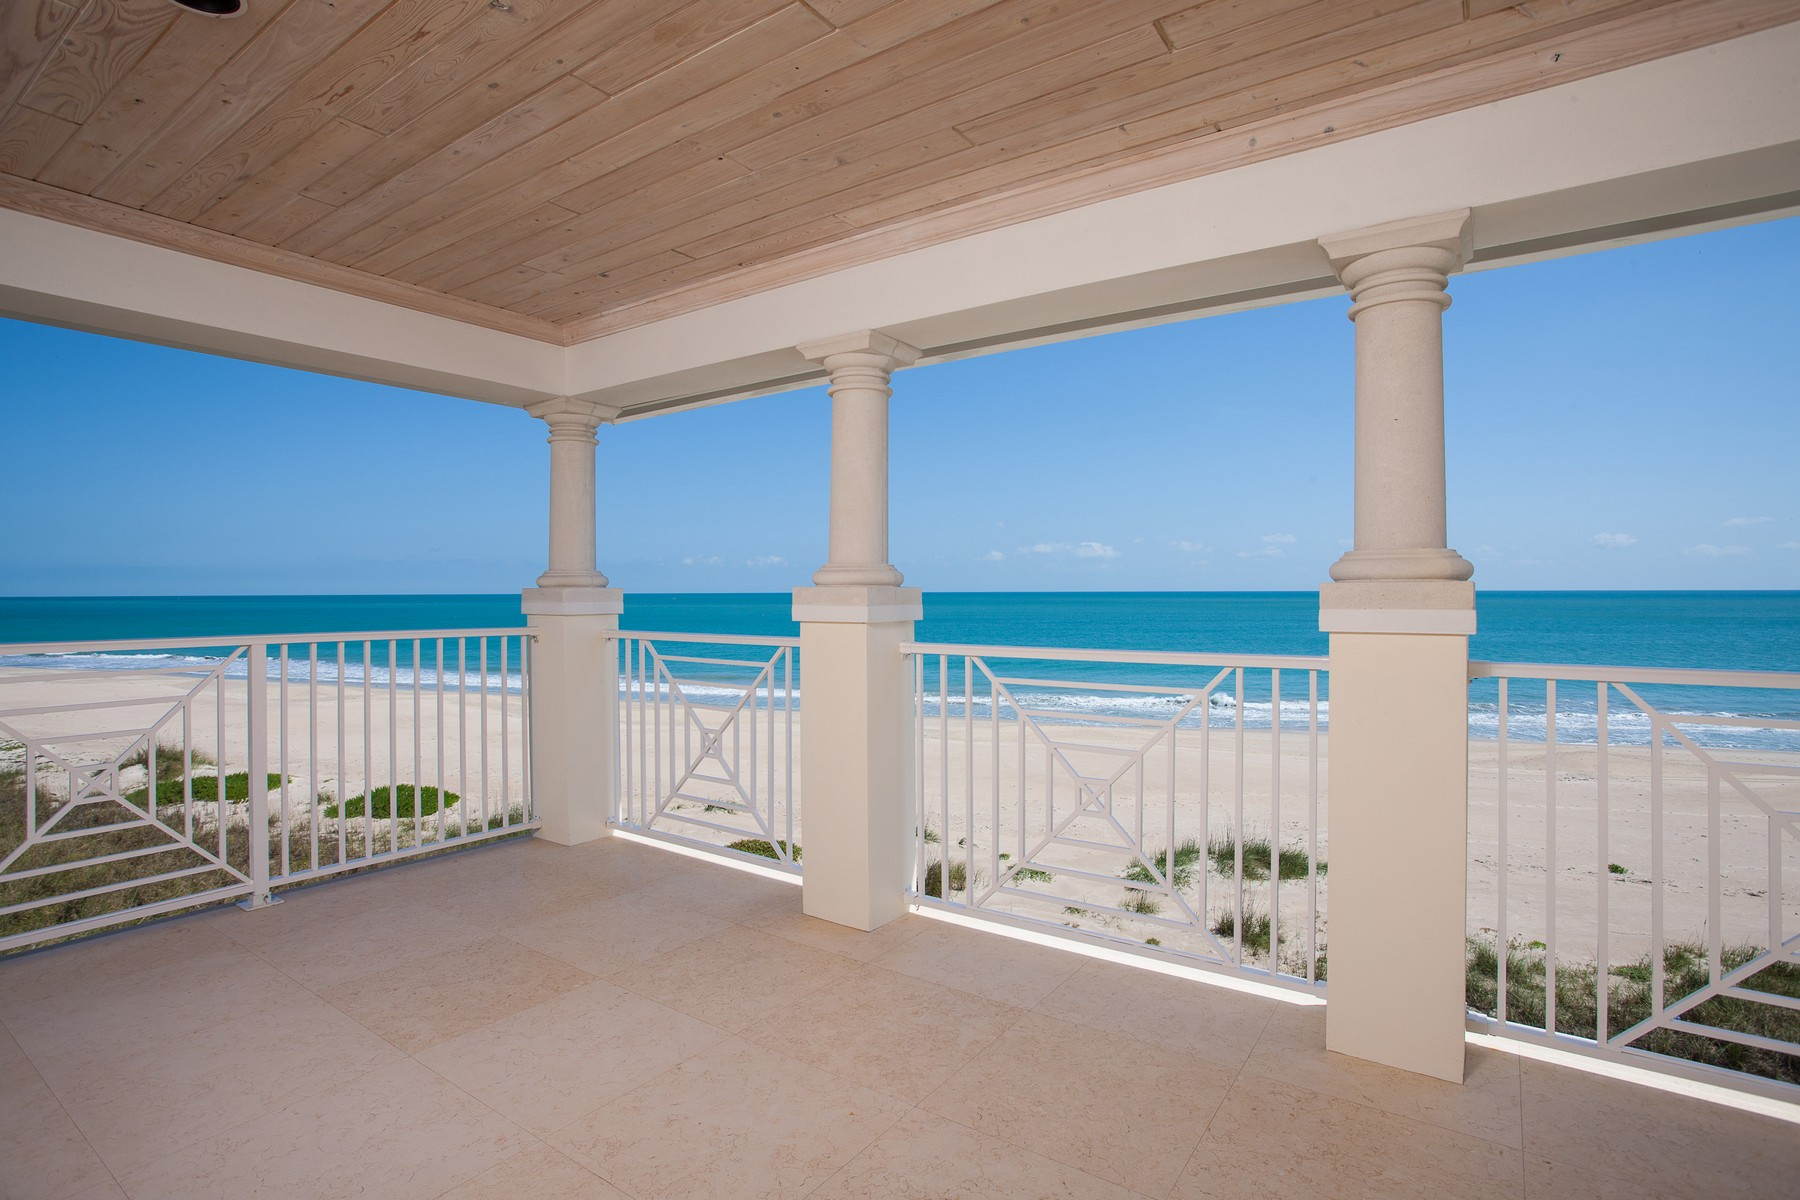 Single Family Home for Sale at Extraordinary Avalon Beach Oceanfront Home with Elevator 6408 Ocean Estates Court Fort Pierce, Florida 34949 United States